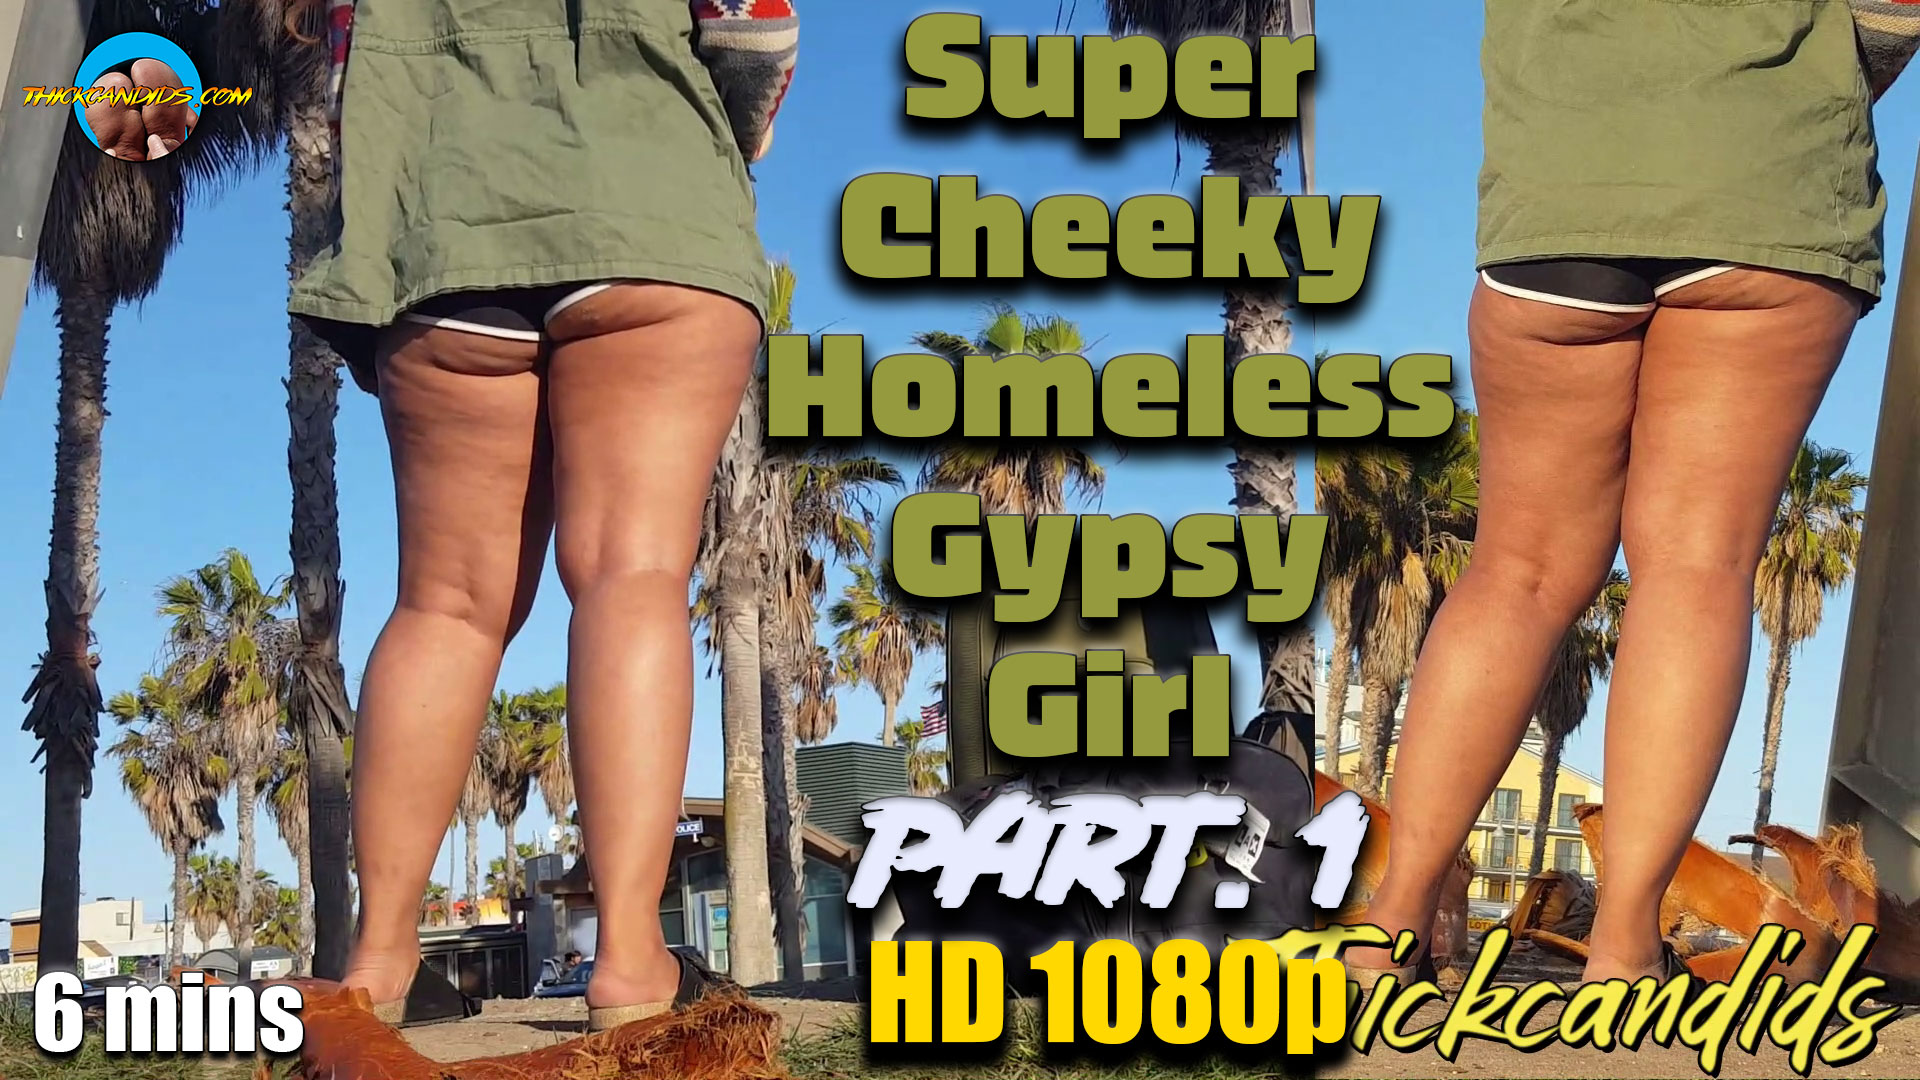 Super-Cheeky-Homeless-Gypsy-Girl-Part.-1